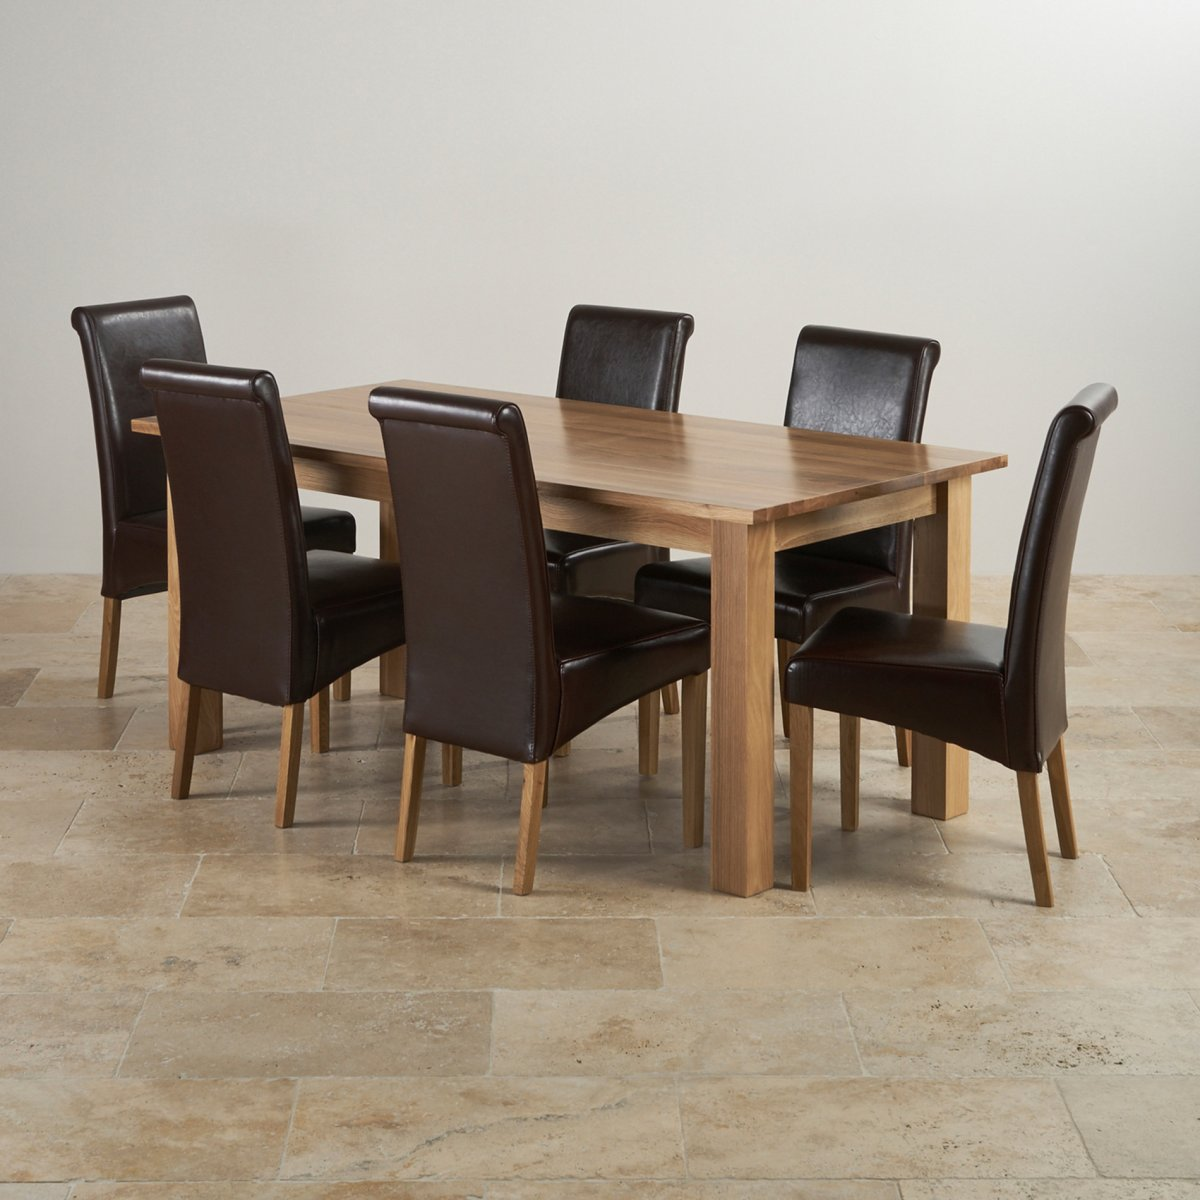 dining table set 6 chairs folding wood chair plans contemporary in natural oak 6ft 43